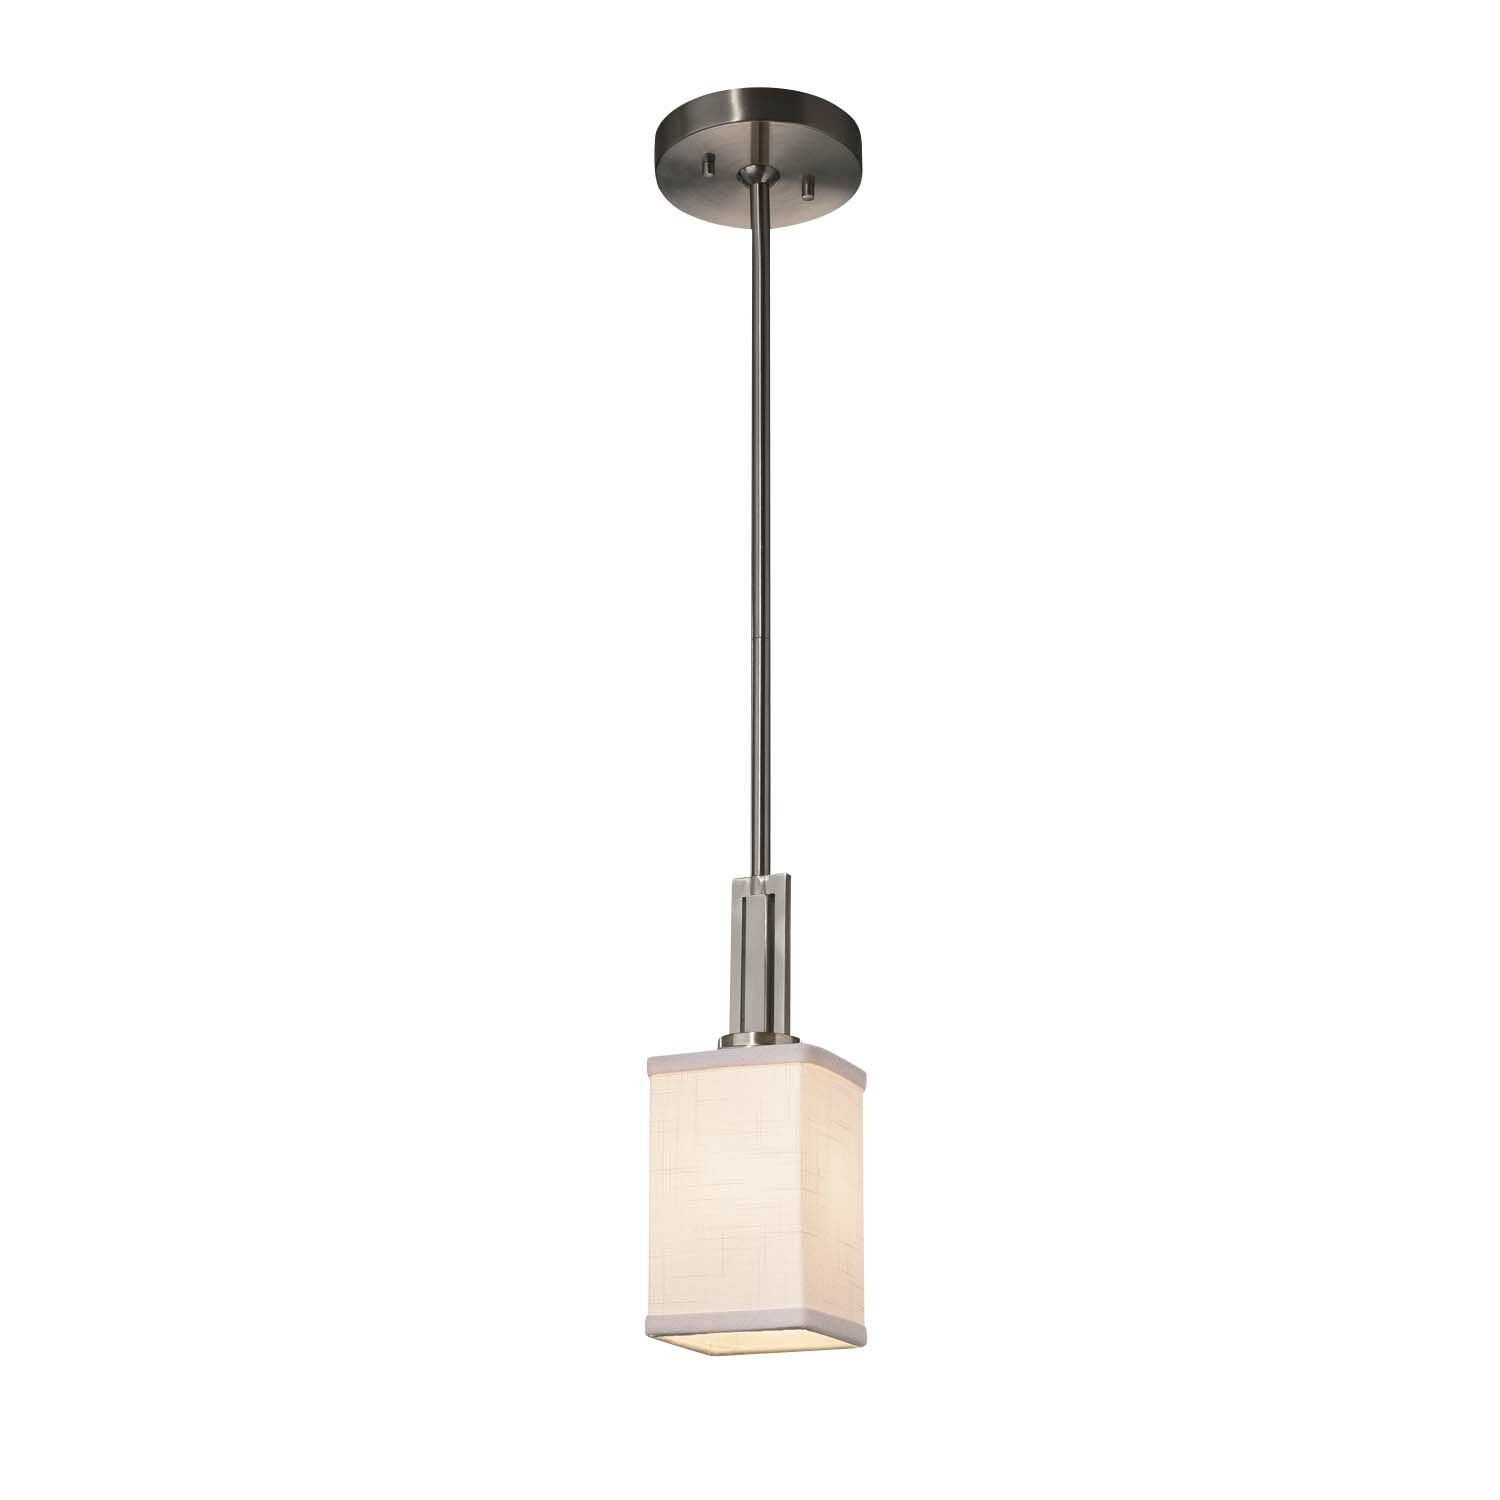 Kenyon 1-Light Rectangle Pendant Finish: Brushed Nickel, Shade Color: Cream, Bulb Type: Dedicated LED